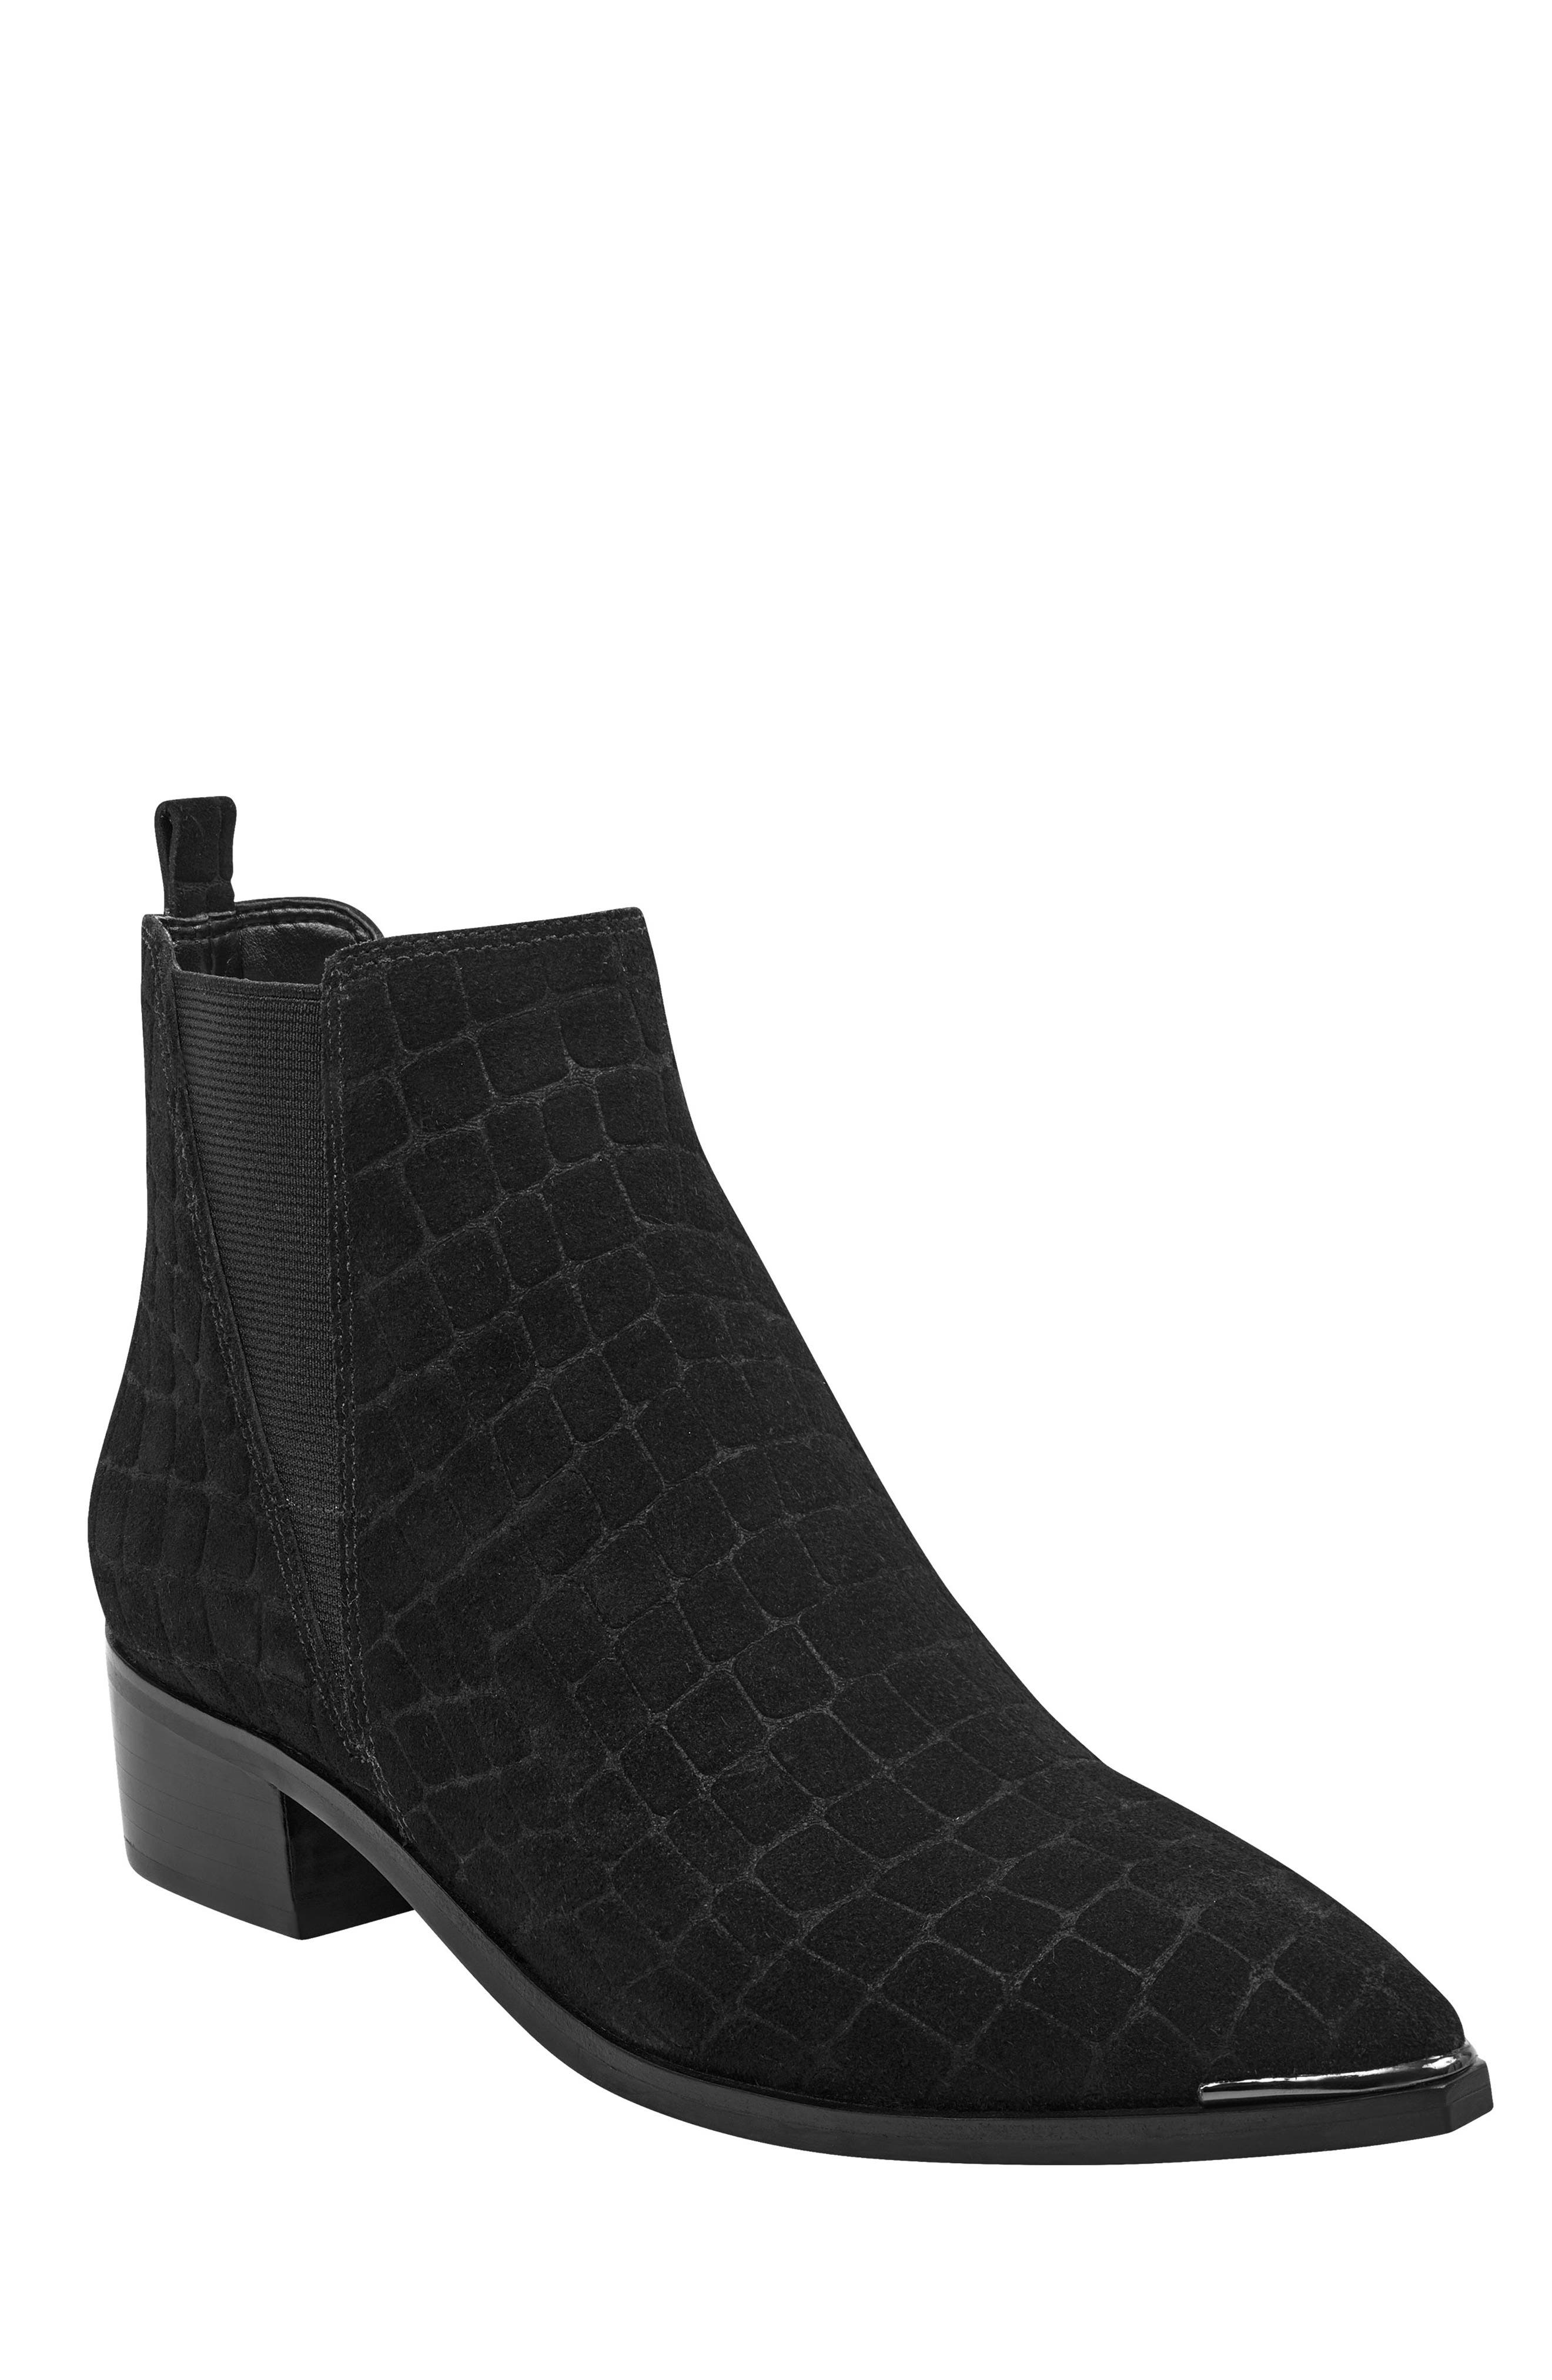 'Yale' Chelsea Boot,                             Main thumbnail 1, color,                             BLACK CROC EMBOSSED SUEDE